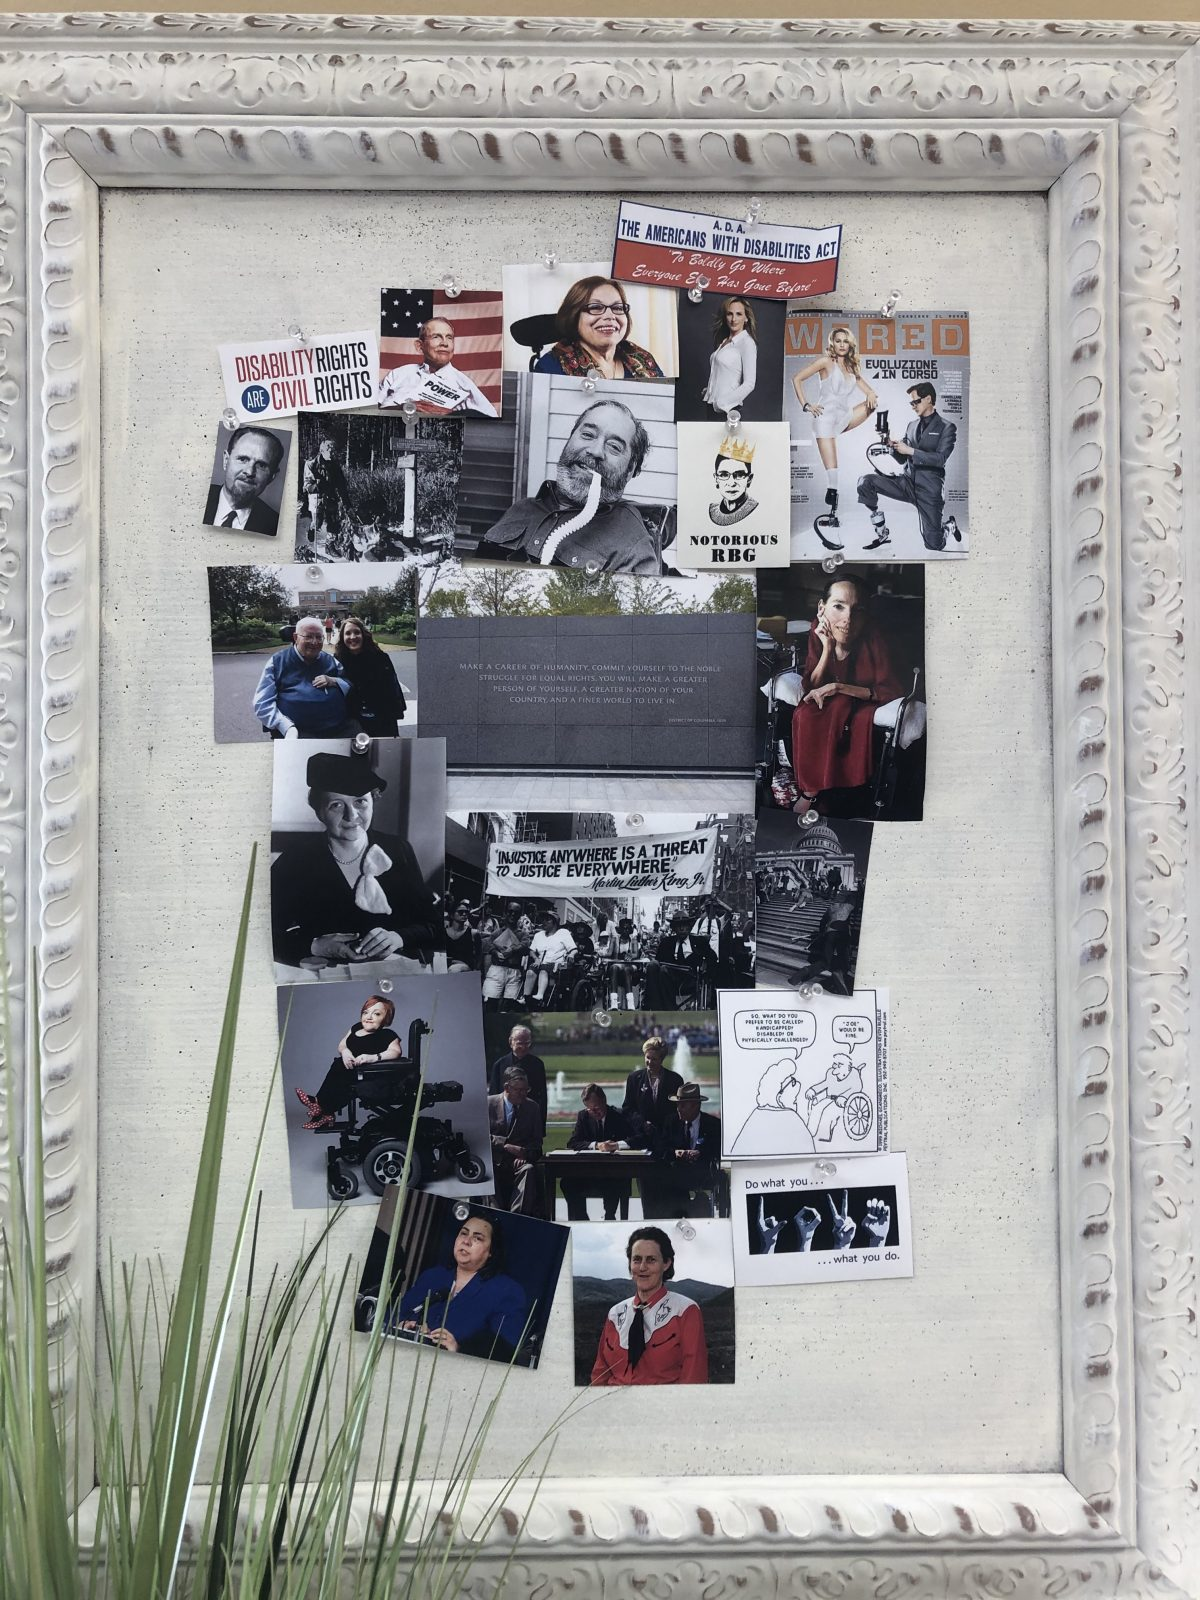 Cork board of disability rights movement iconography and images that hangs in Amber Cheek's office